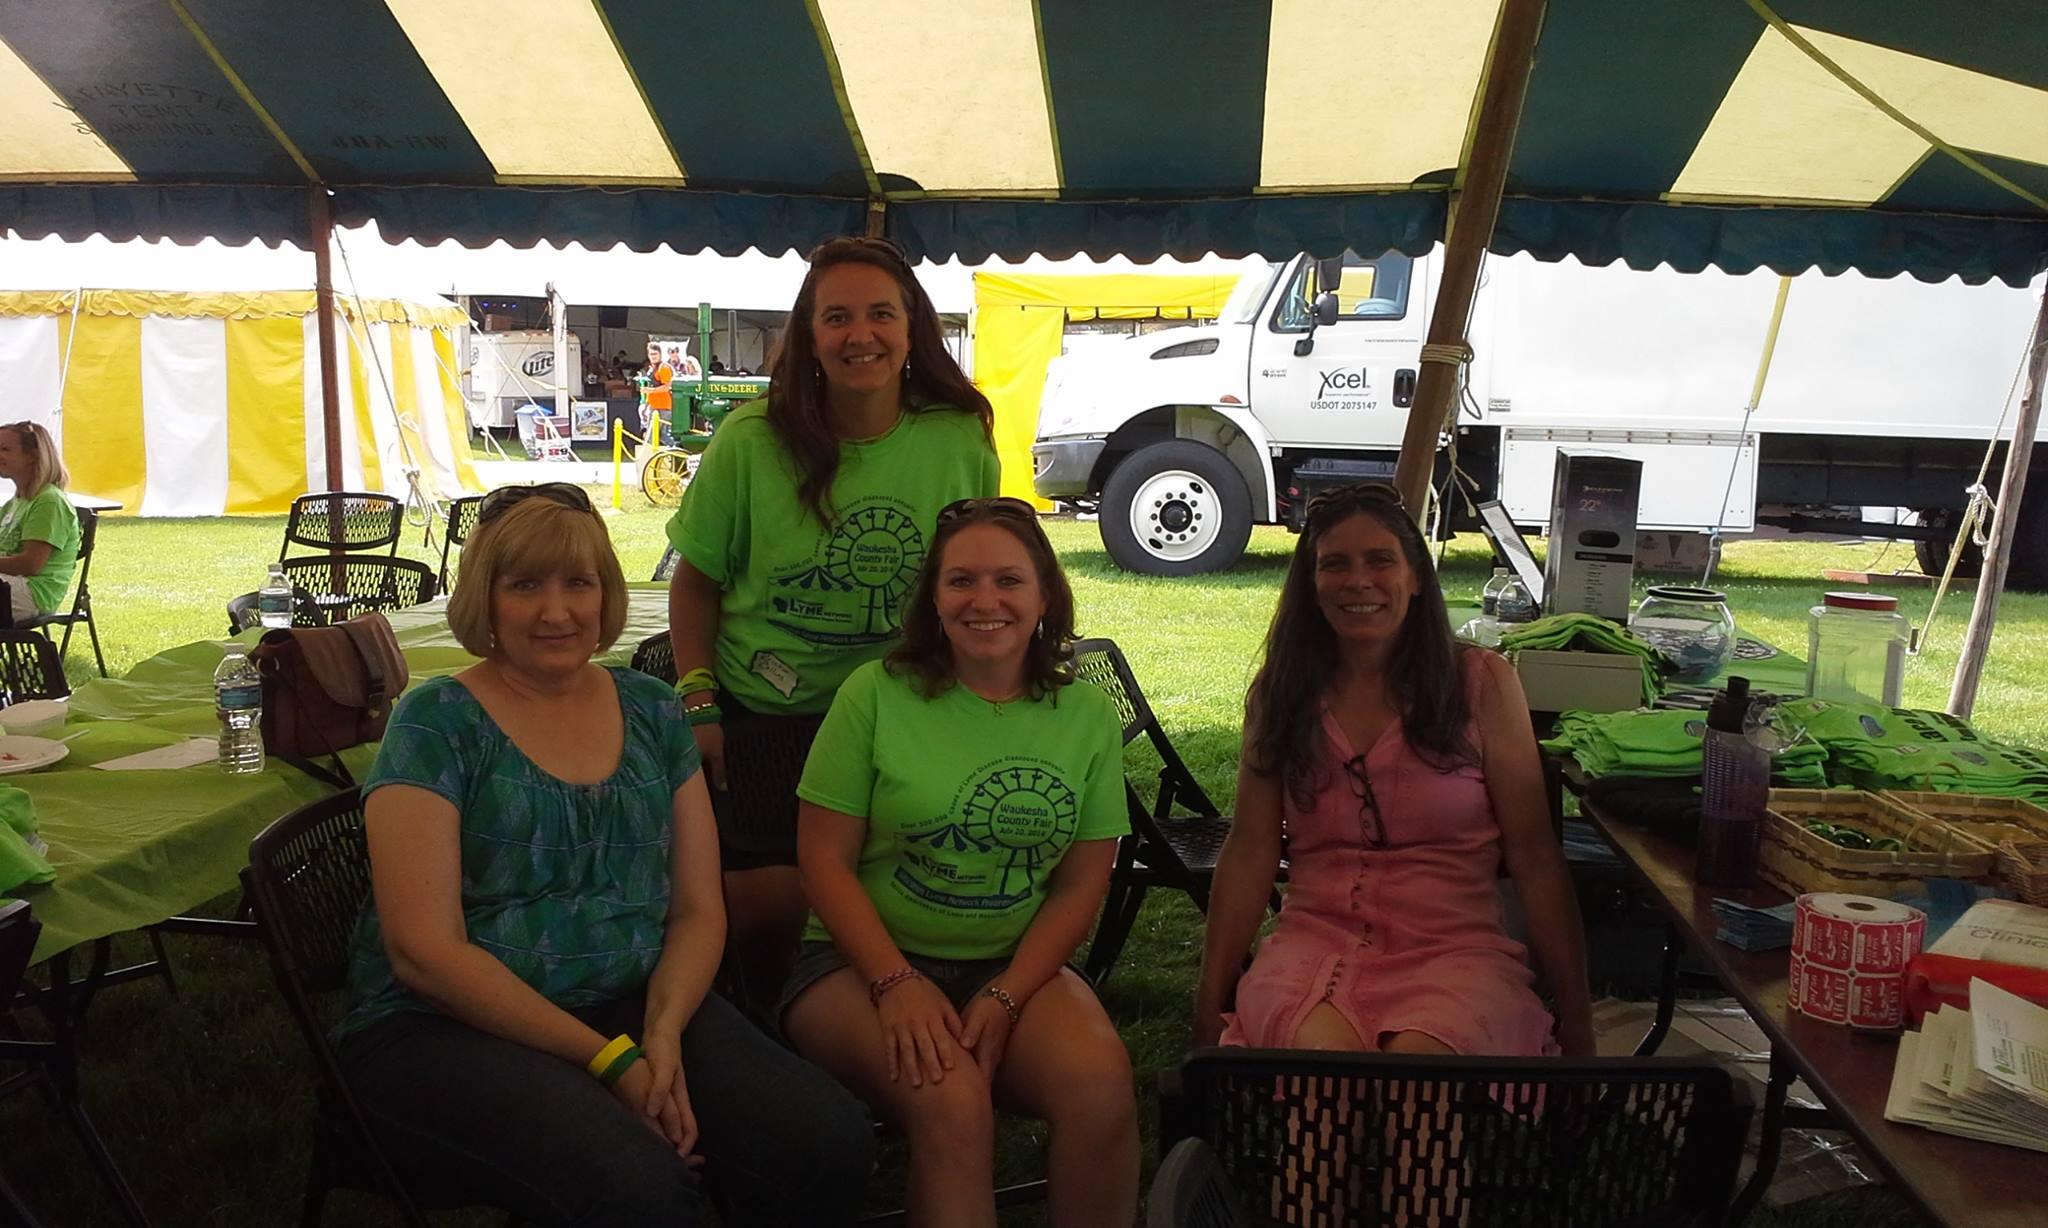 Waukesha County Fair Event 2014